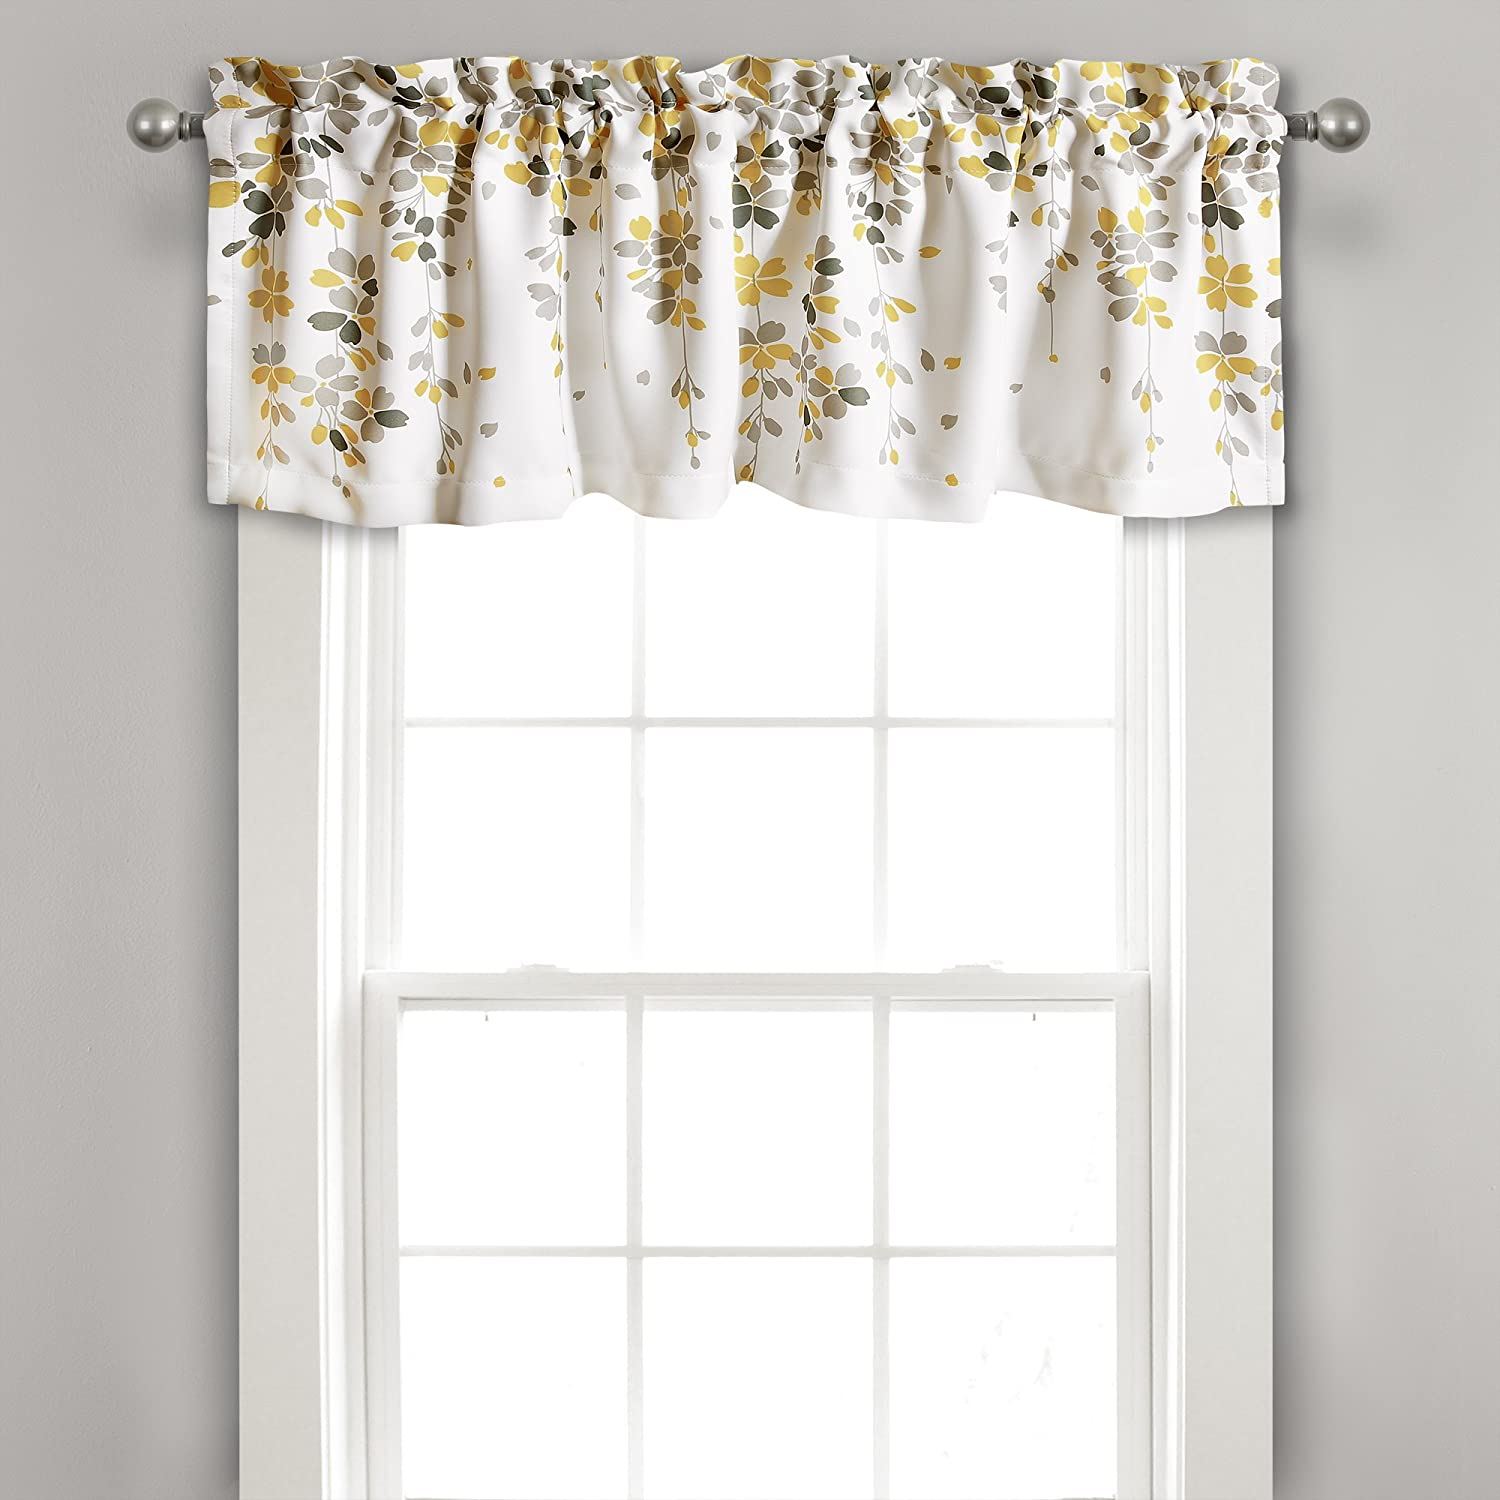 Lush Decor Weeping Flower Room Darkening Window Curtian Valance, 18